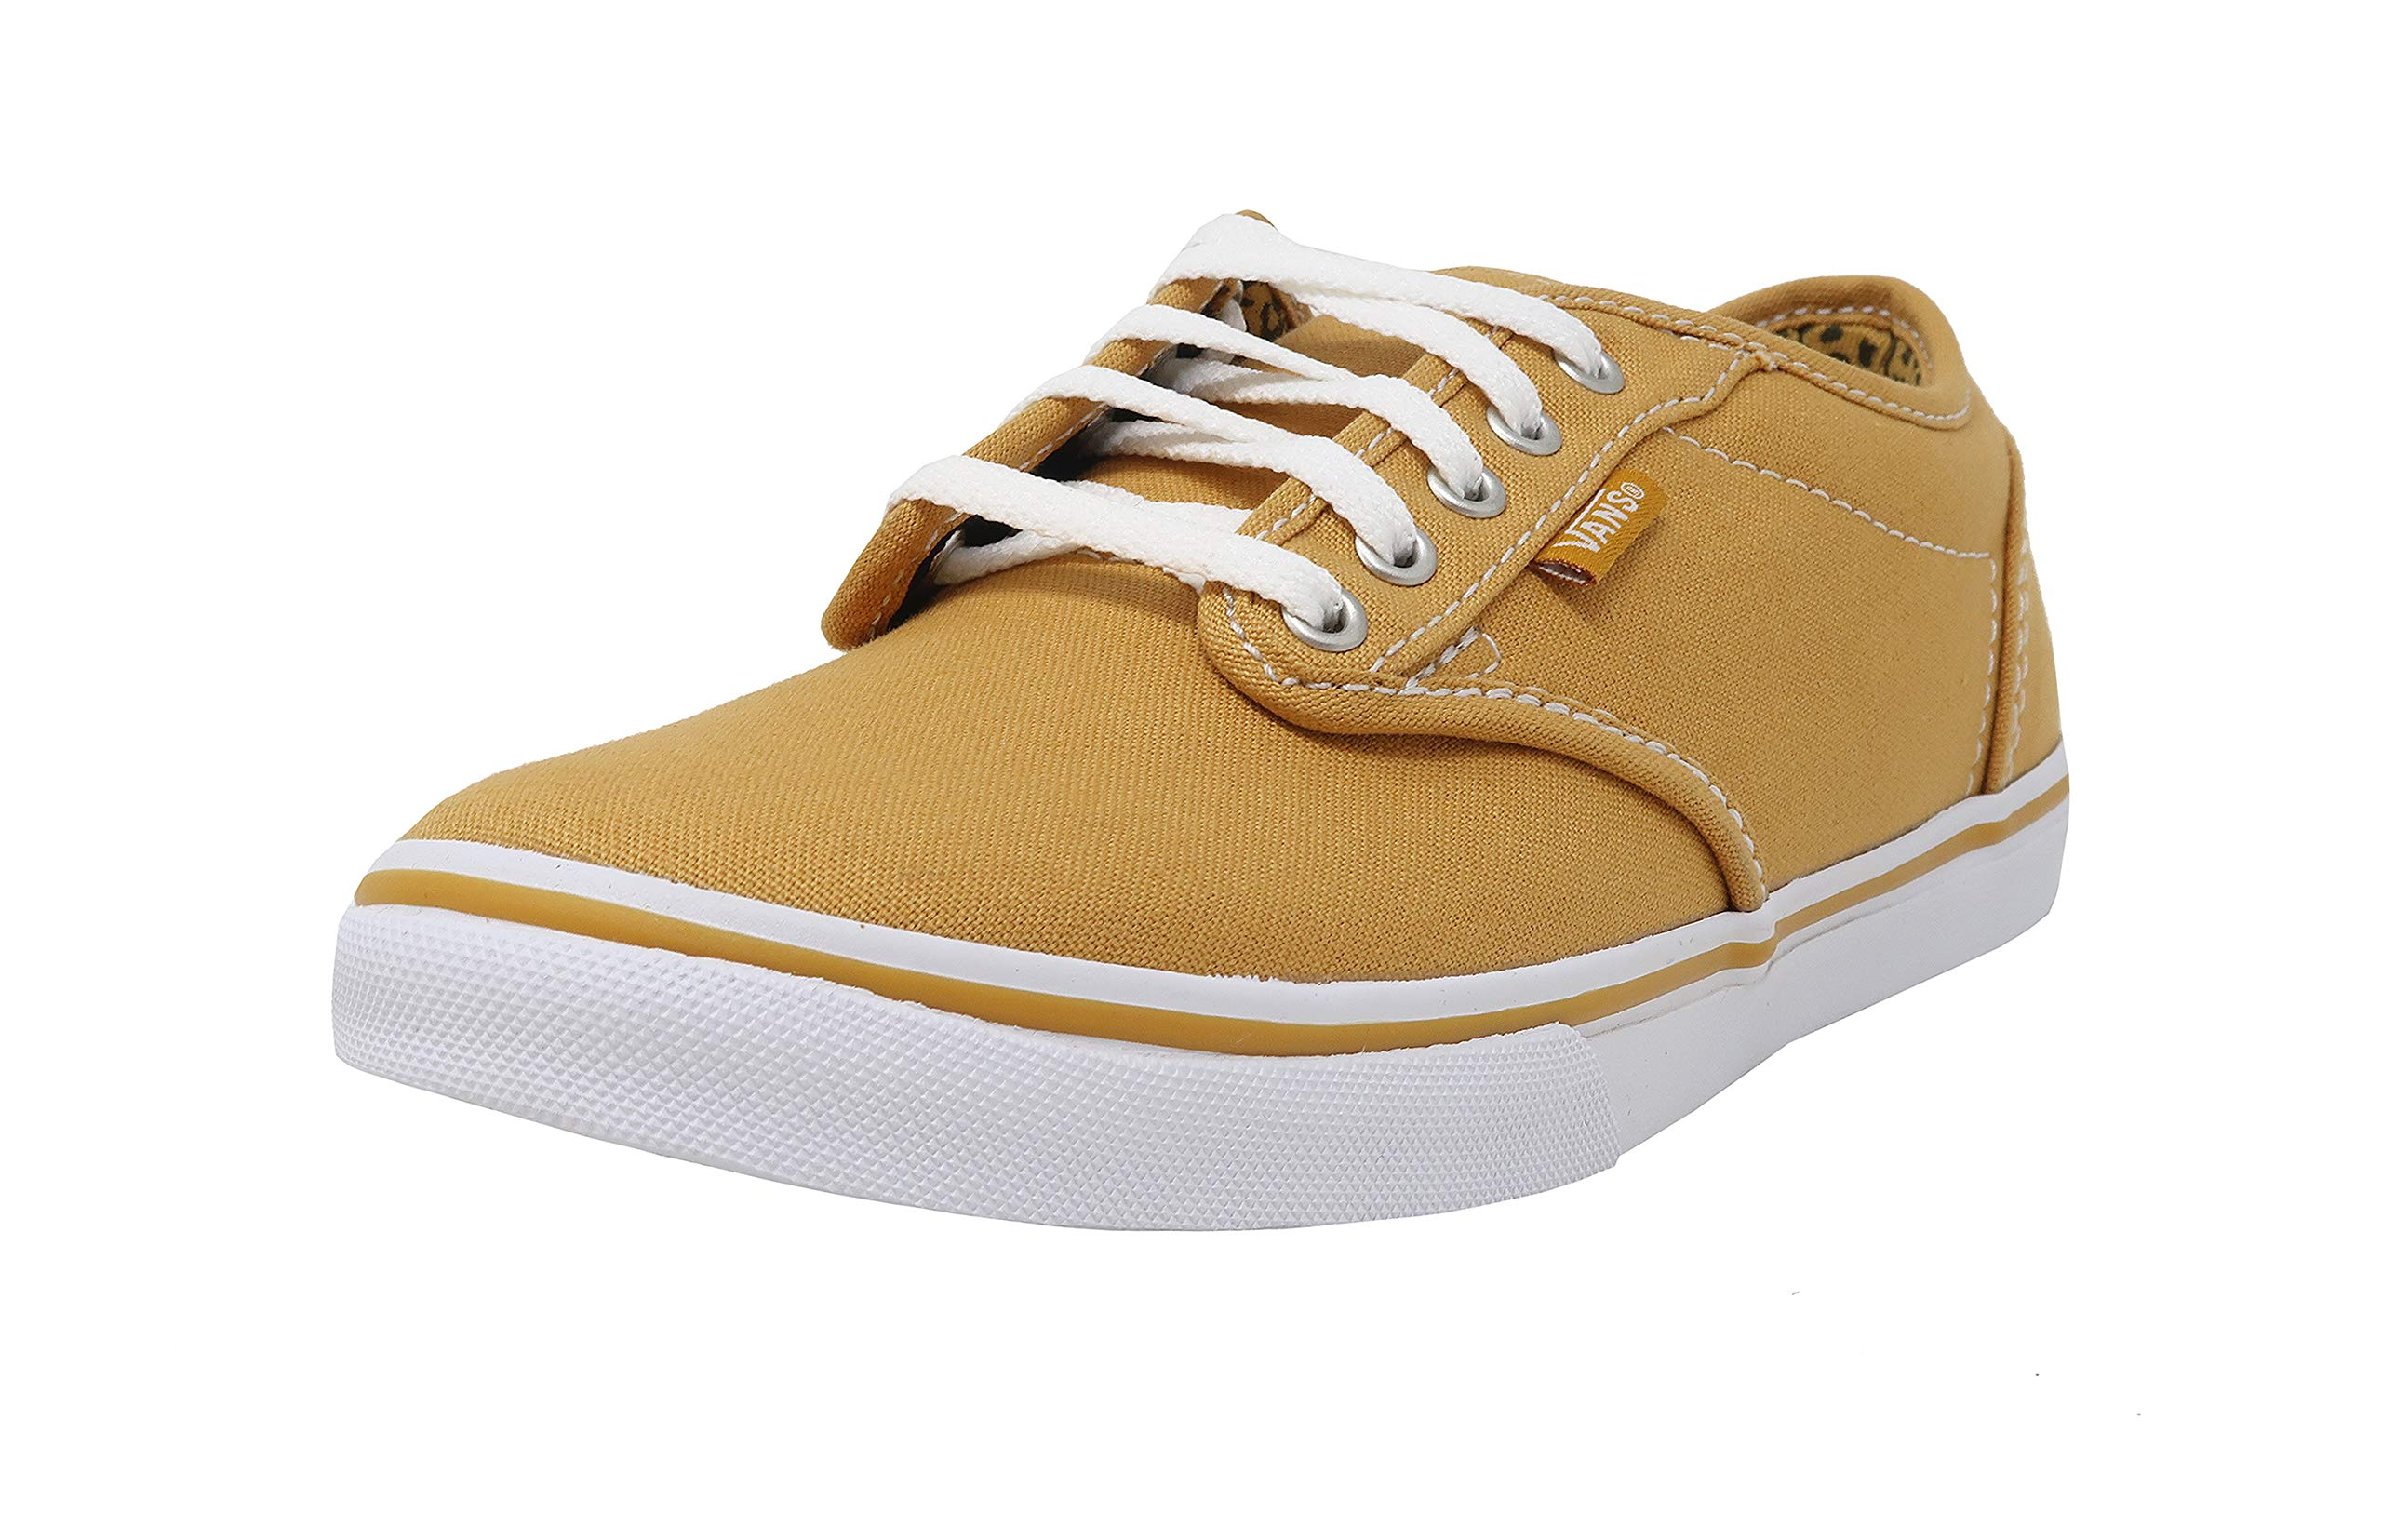 Vans Women's Atwood Low Canvas Skate Shoes Gold/White (11)